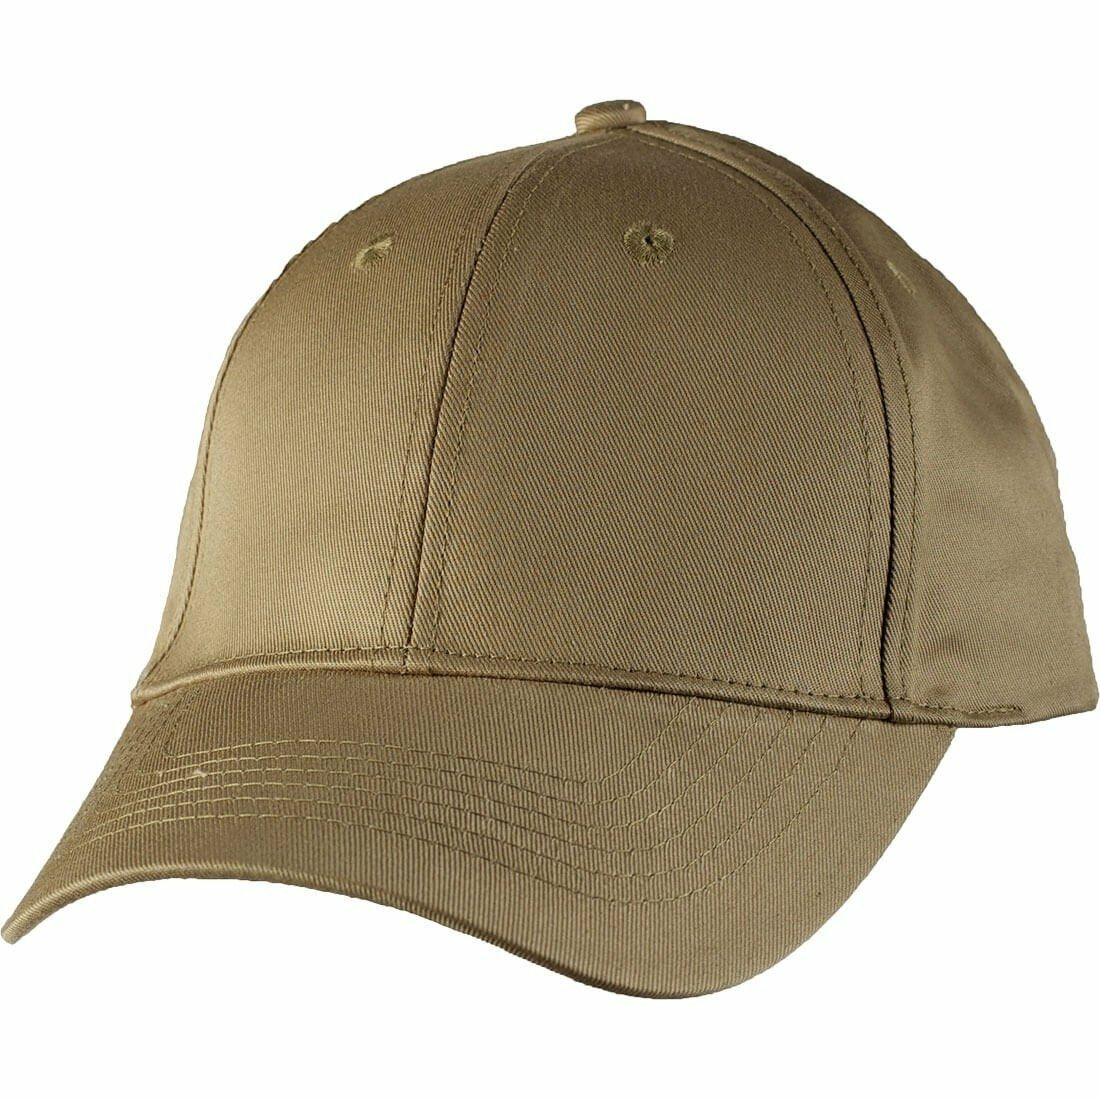 Cotton Peaked Cap